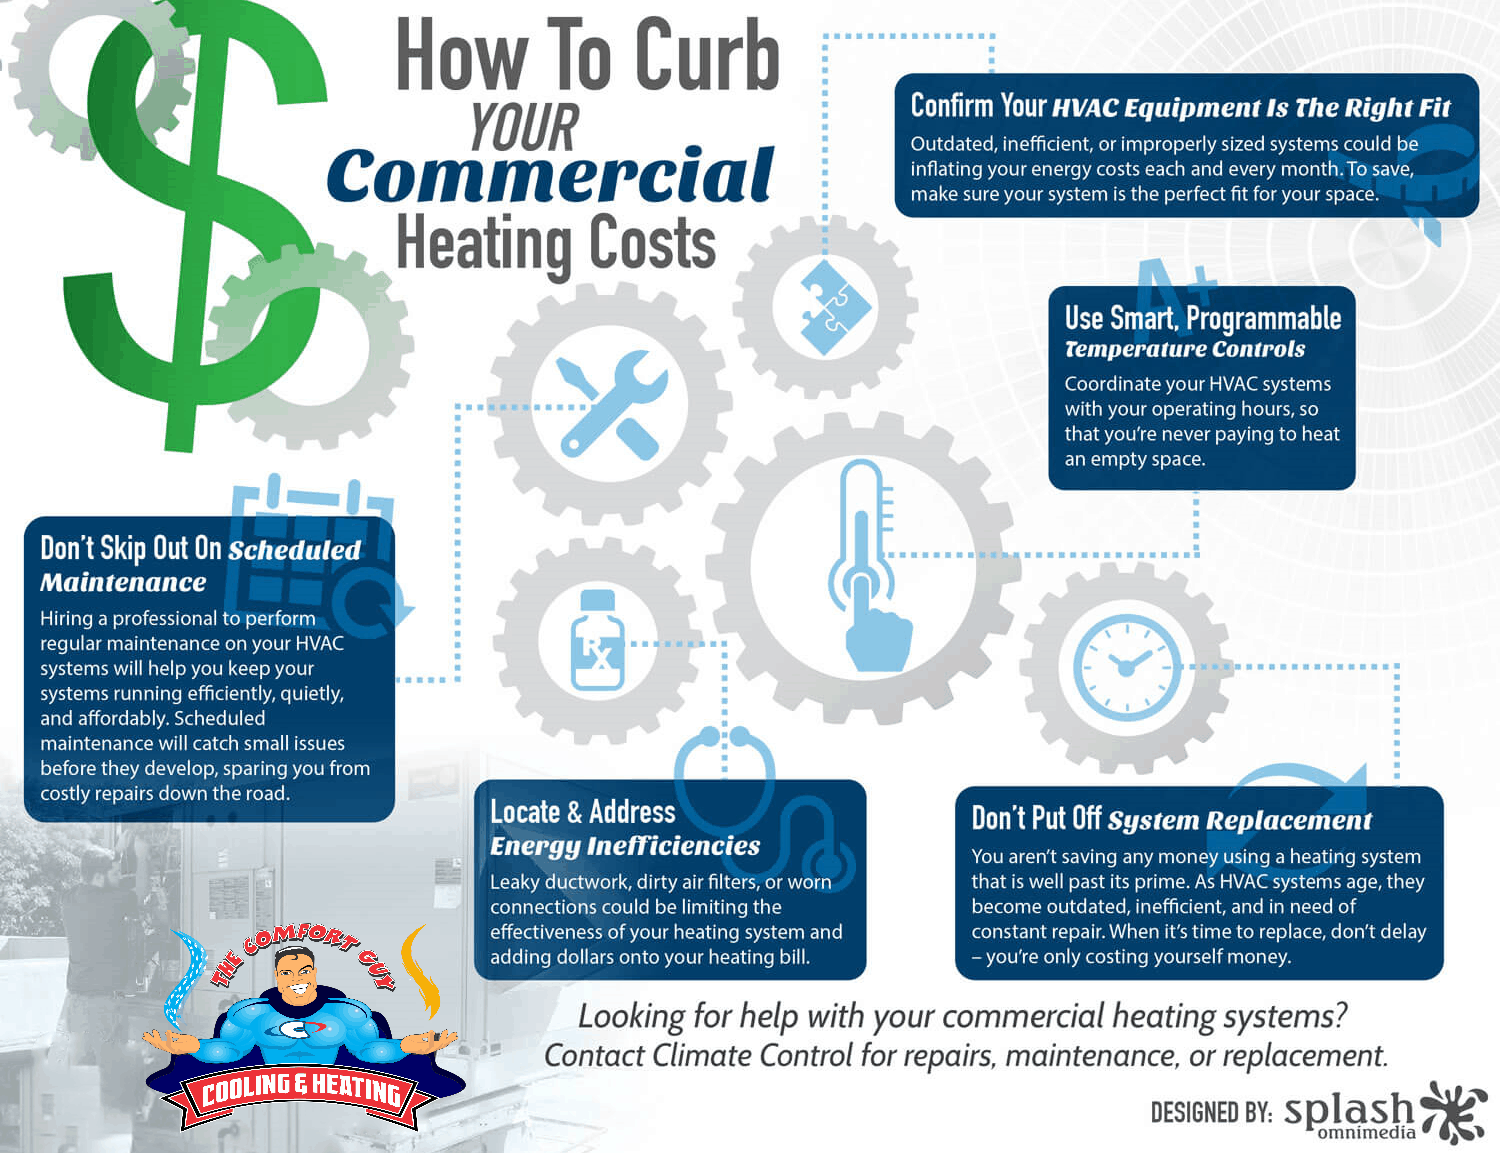 lrg-infographic-commercial-heating